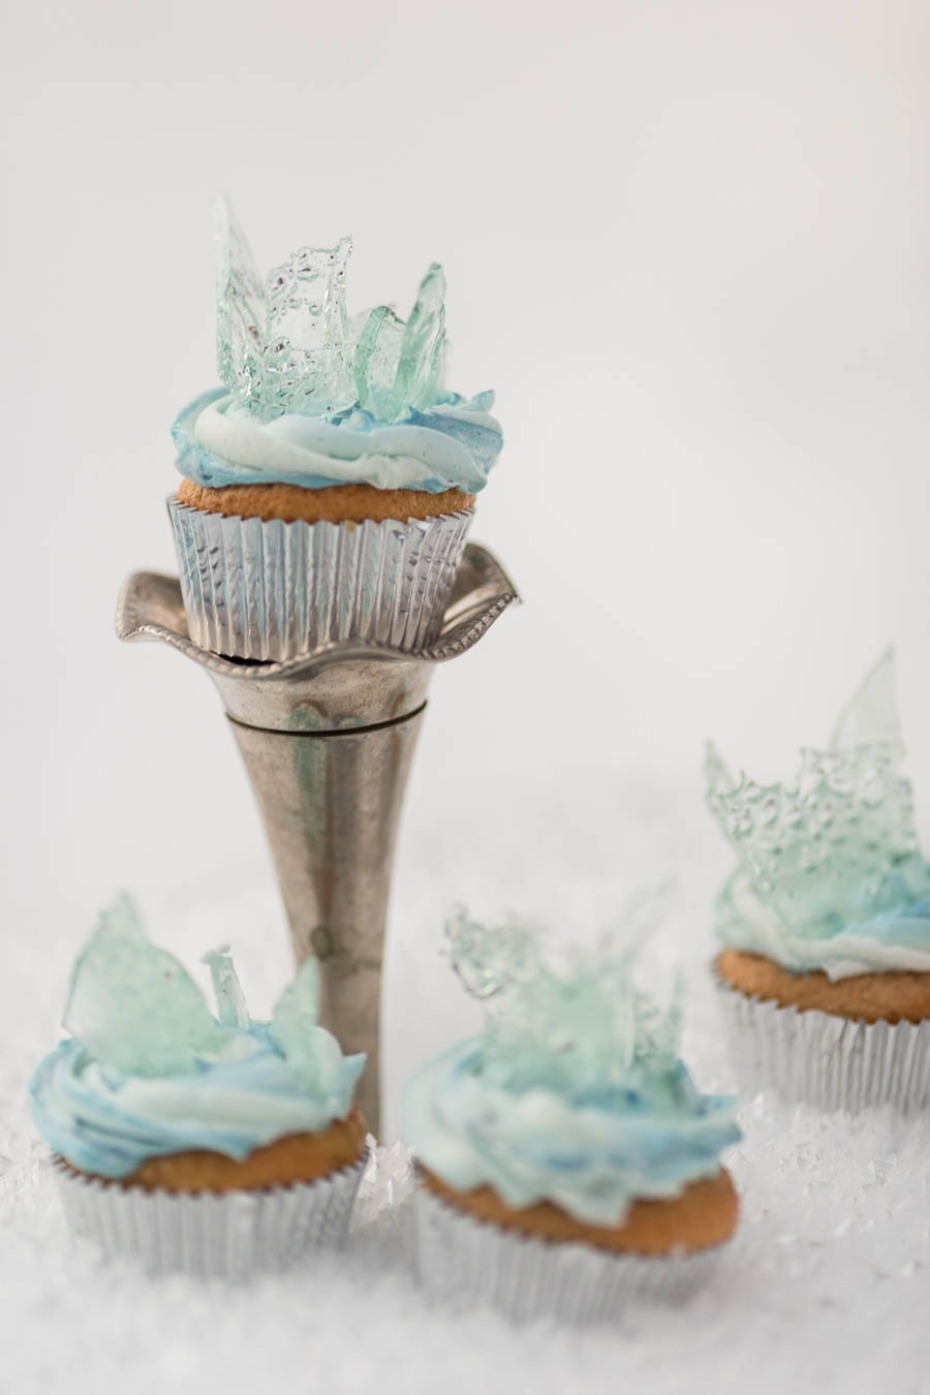 Disneys Frozen inspired wedding cupcakes